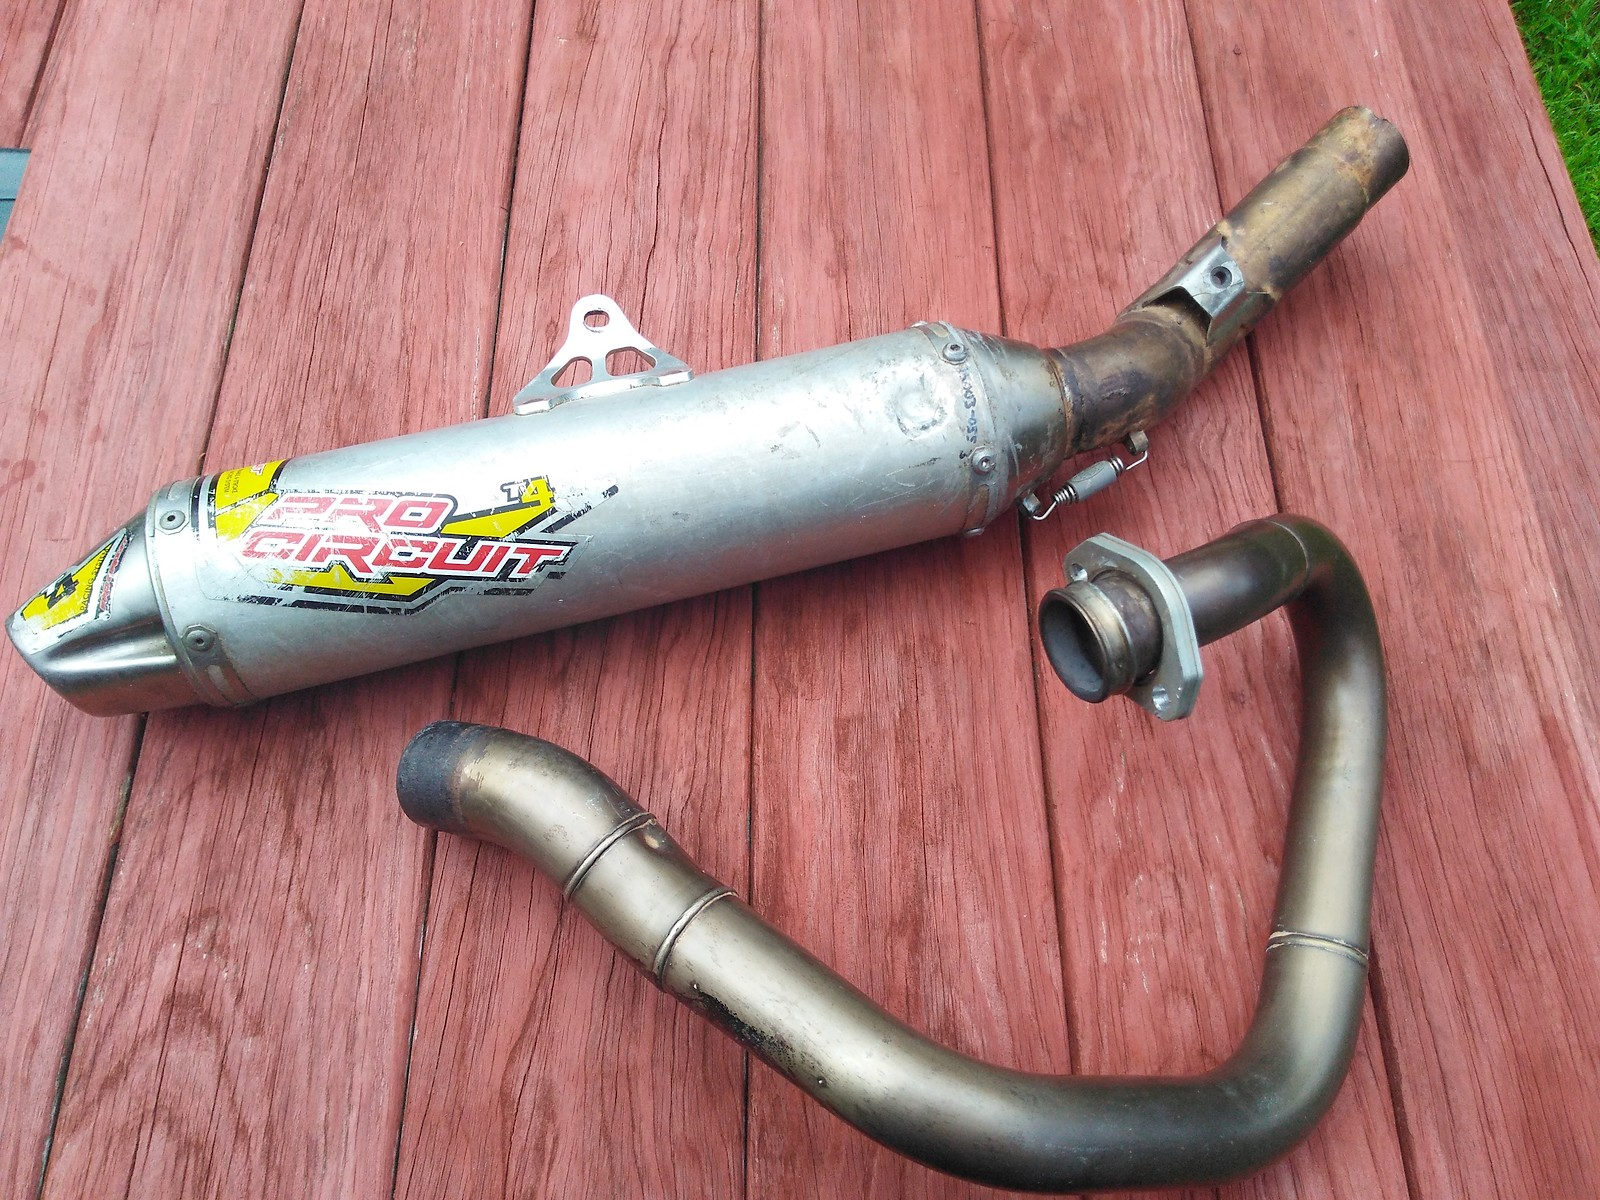 Pro circuit exhaust t4 with yosh head pipe  $250 - For Sale